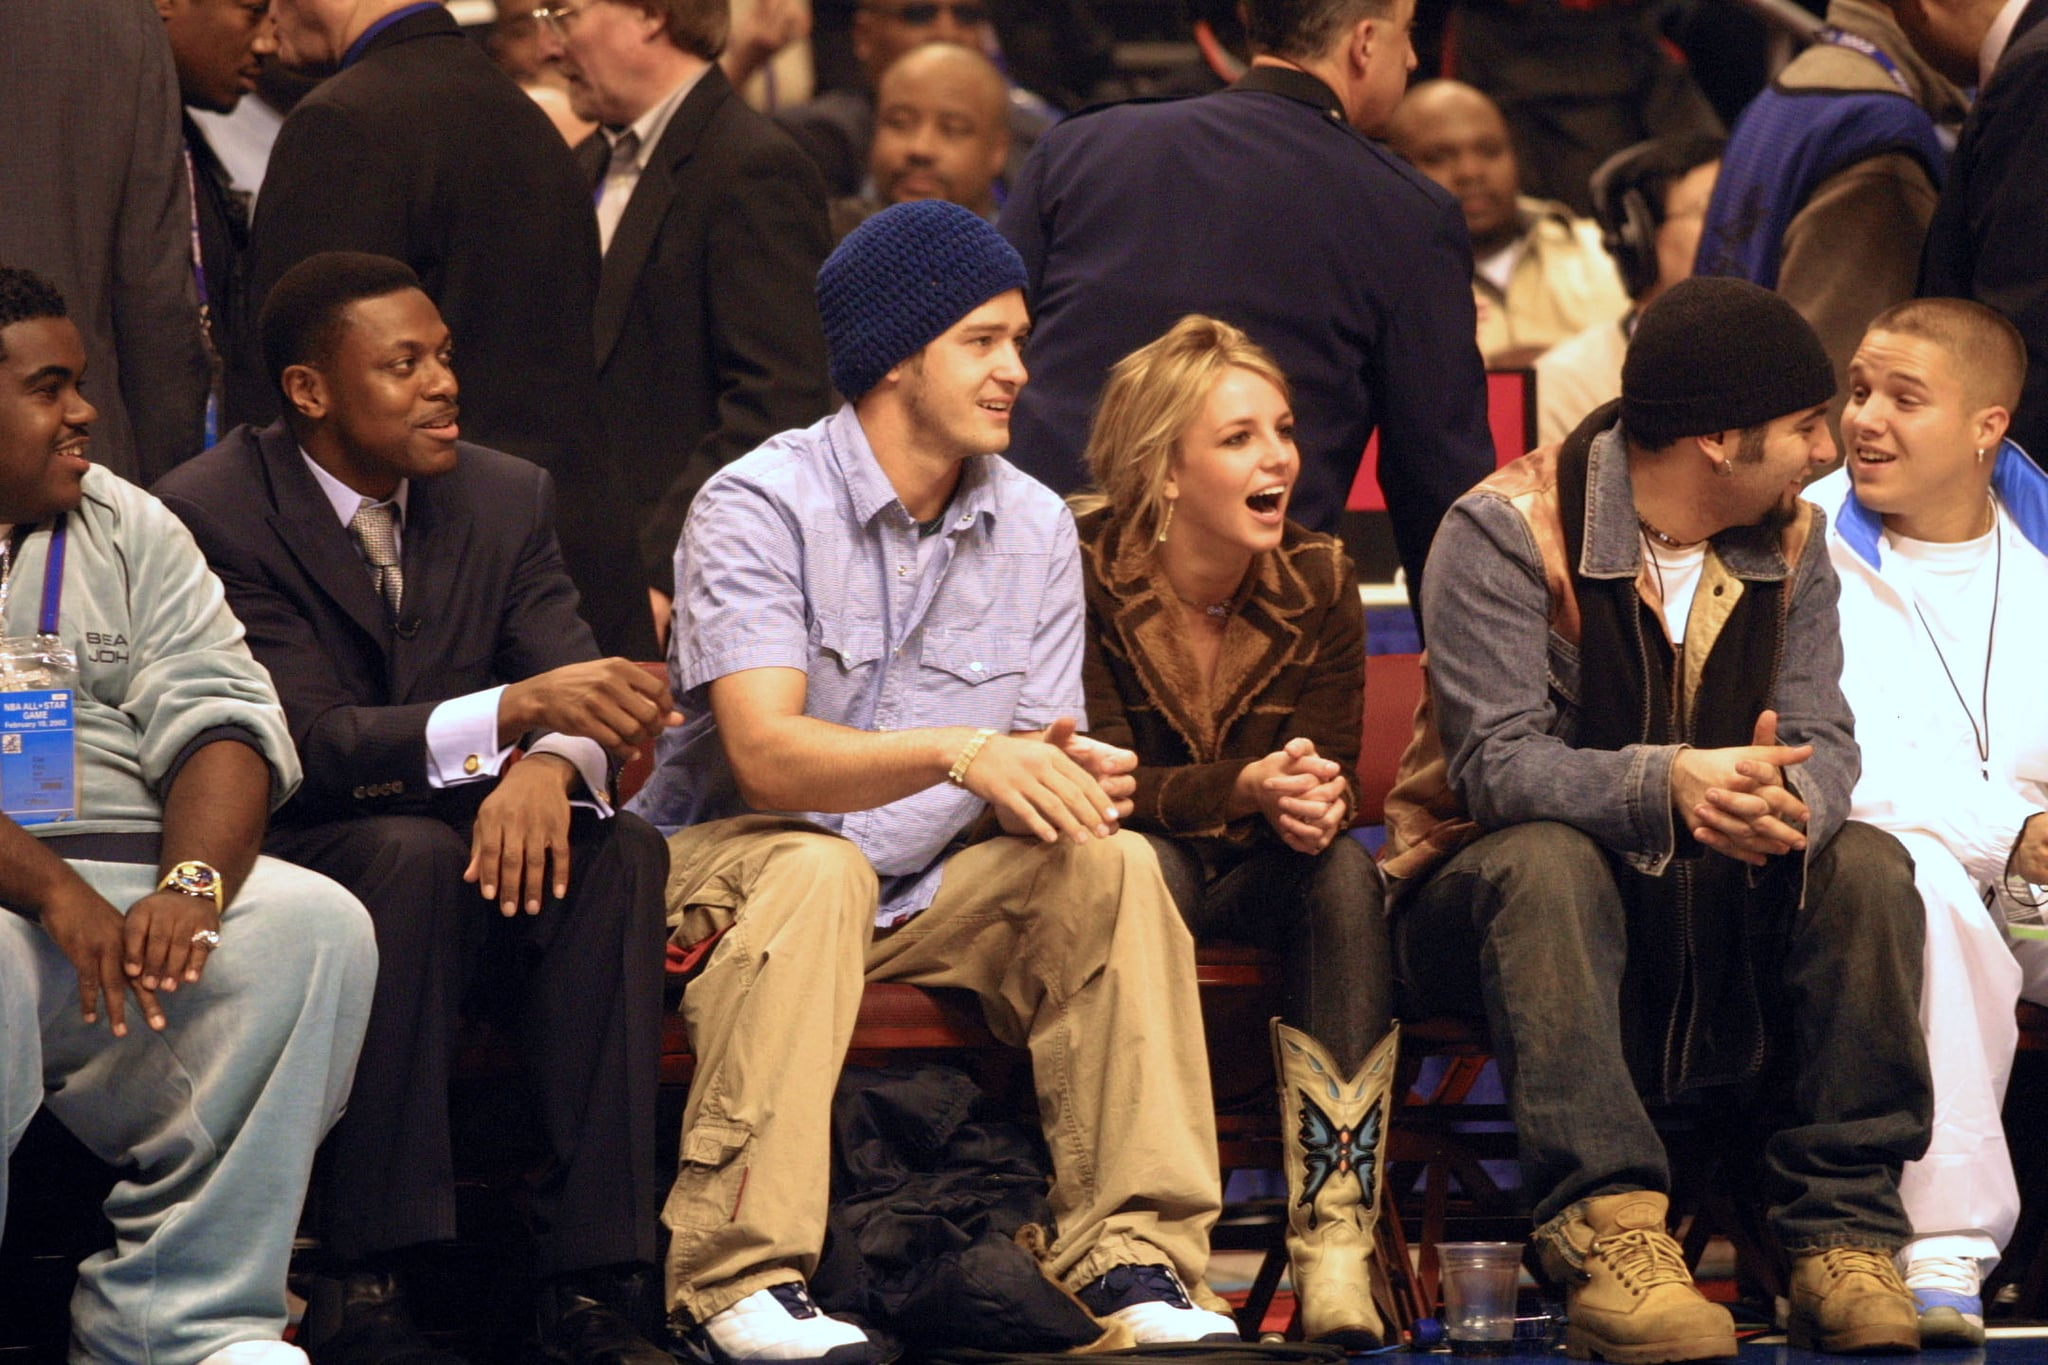 Justin Timberlake sat courtside with Chris Tucker, Chris Kirkpatrick, and then-girlfriend Britney Spears at the NBA All-Star Game in February 2002.